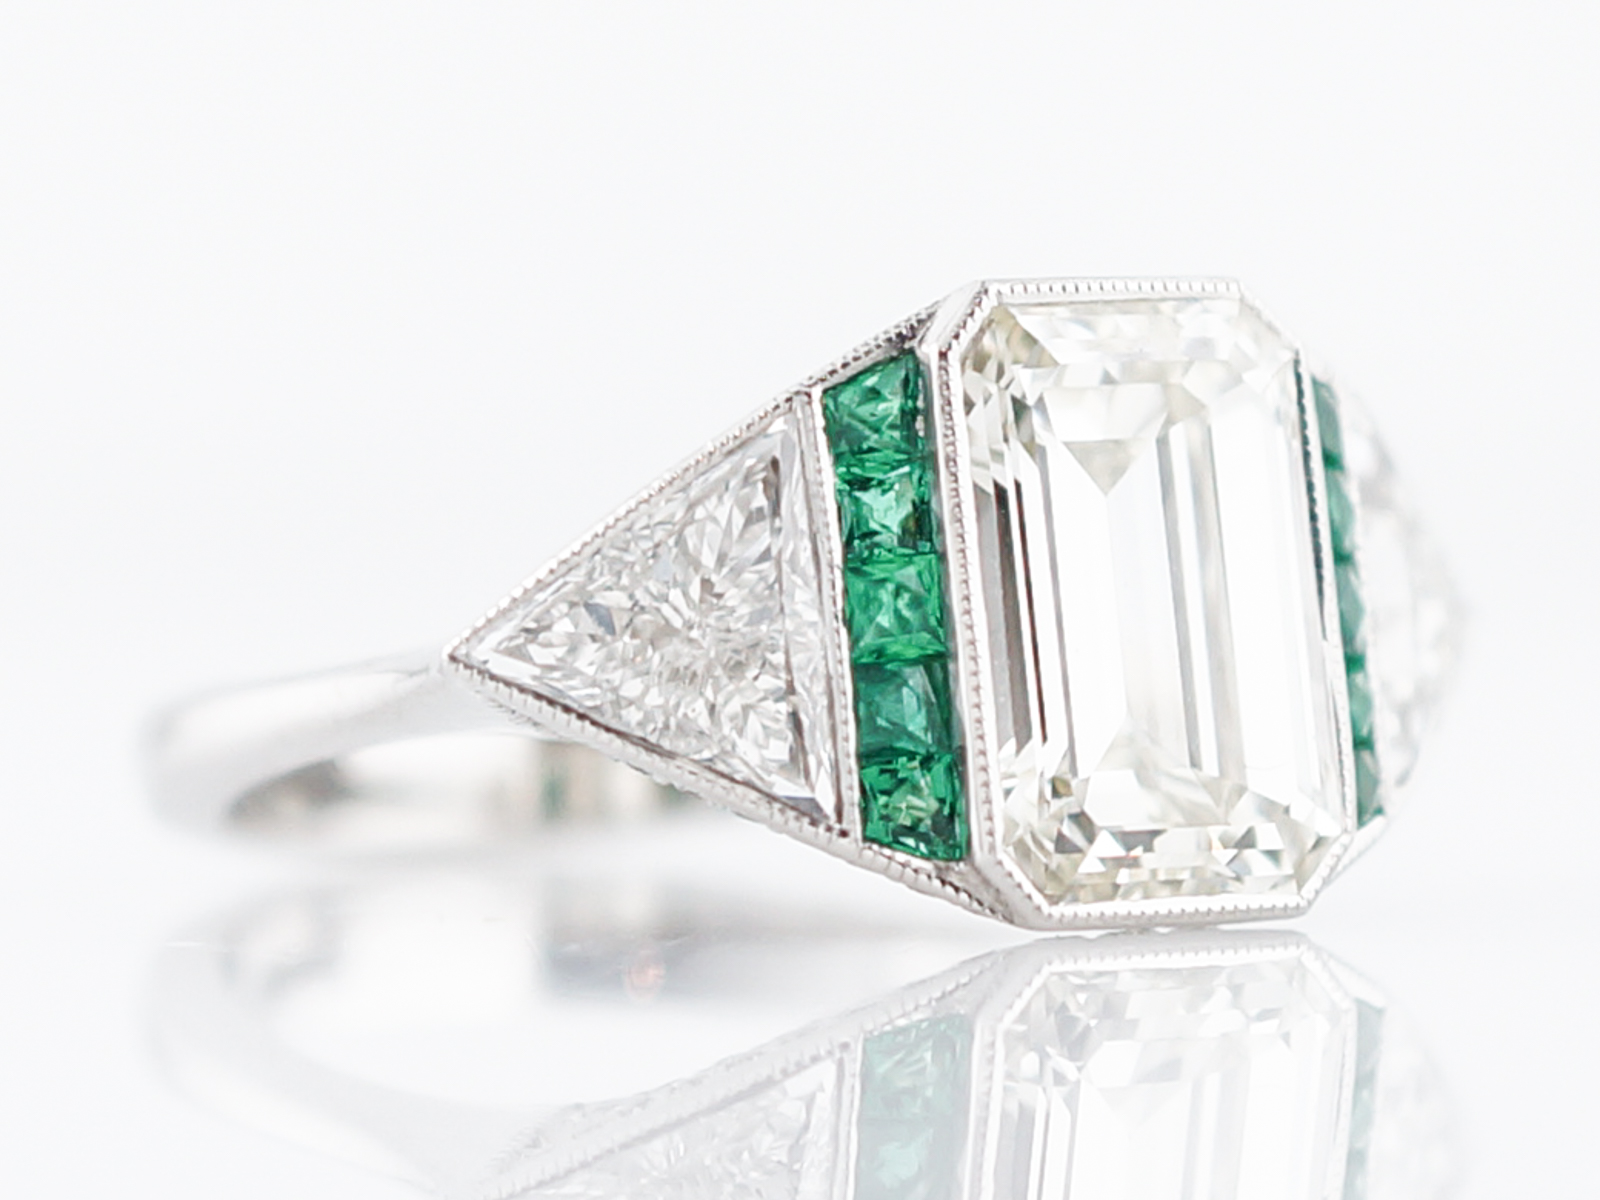 engagement ring modern 2 51 emerald cut diamond 15 emeralds in